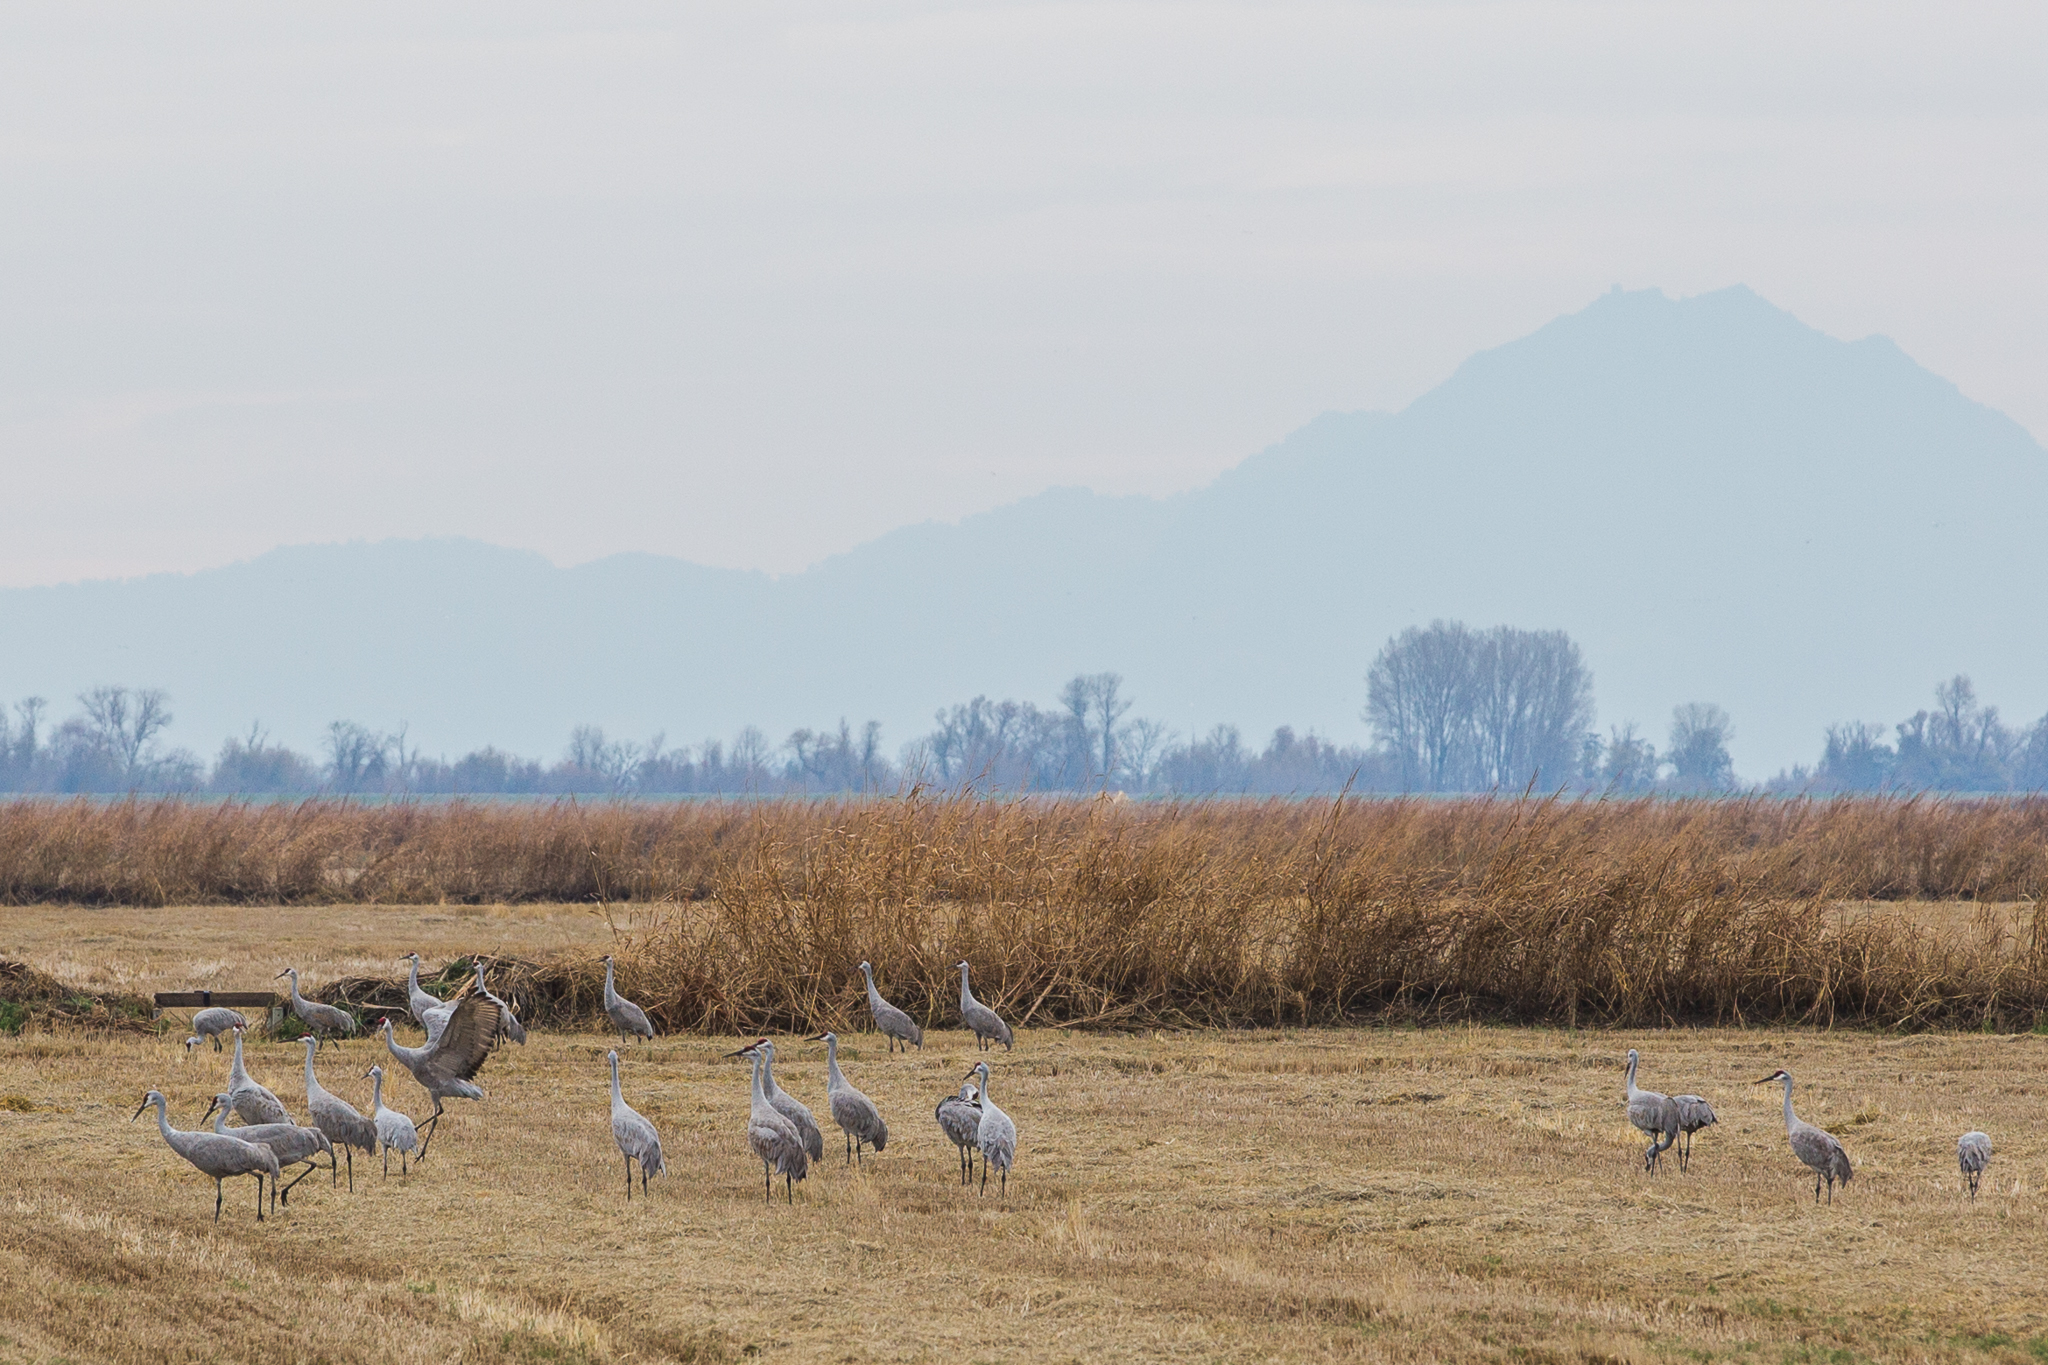 Sandhill cranes rest in a Central Valley rice field with Sutter Buttes in the background.